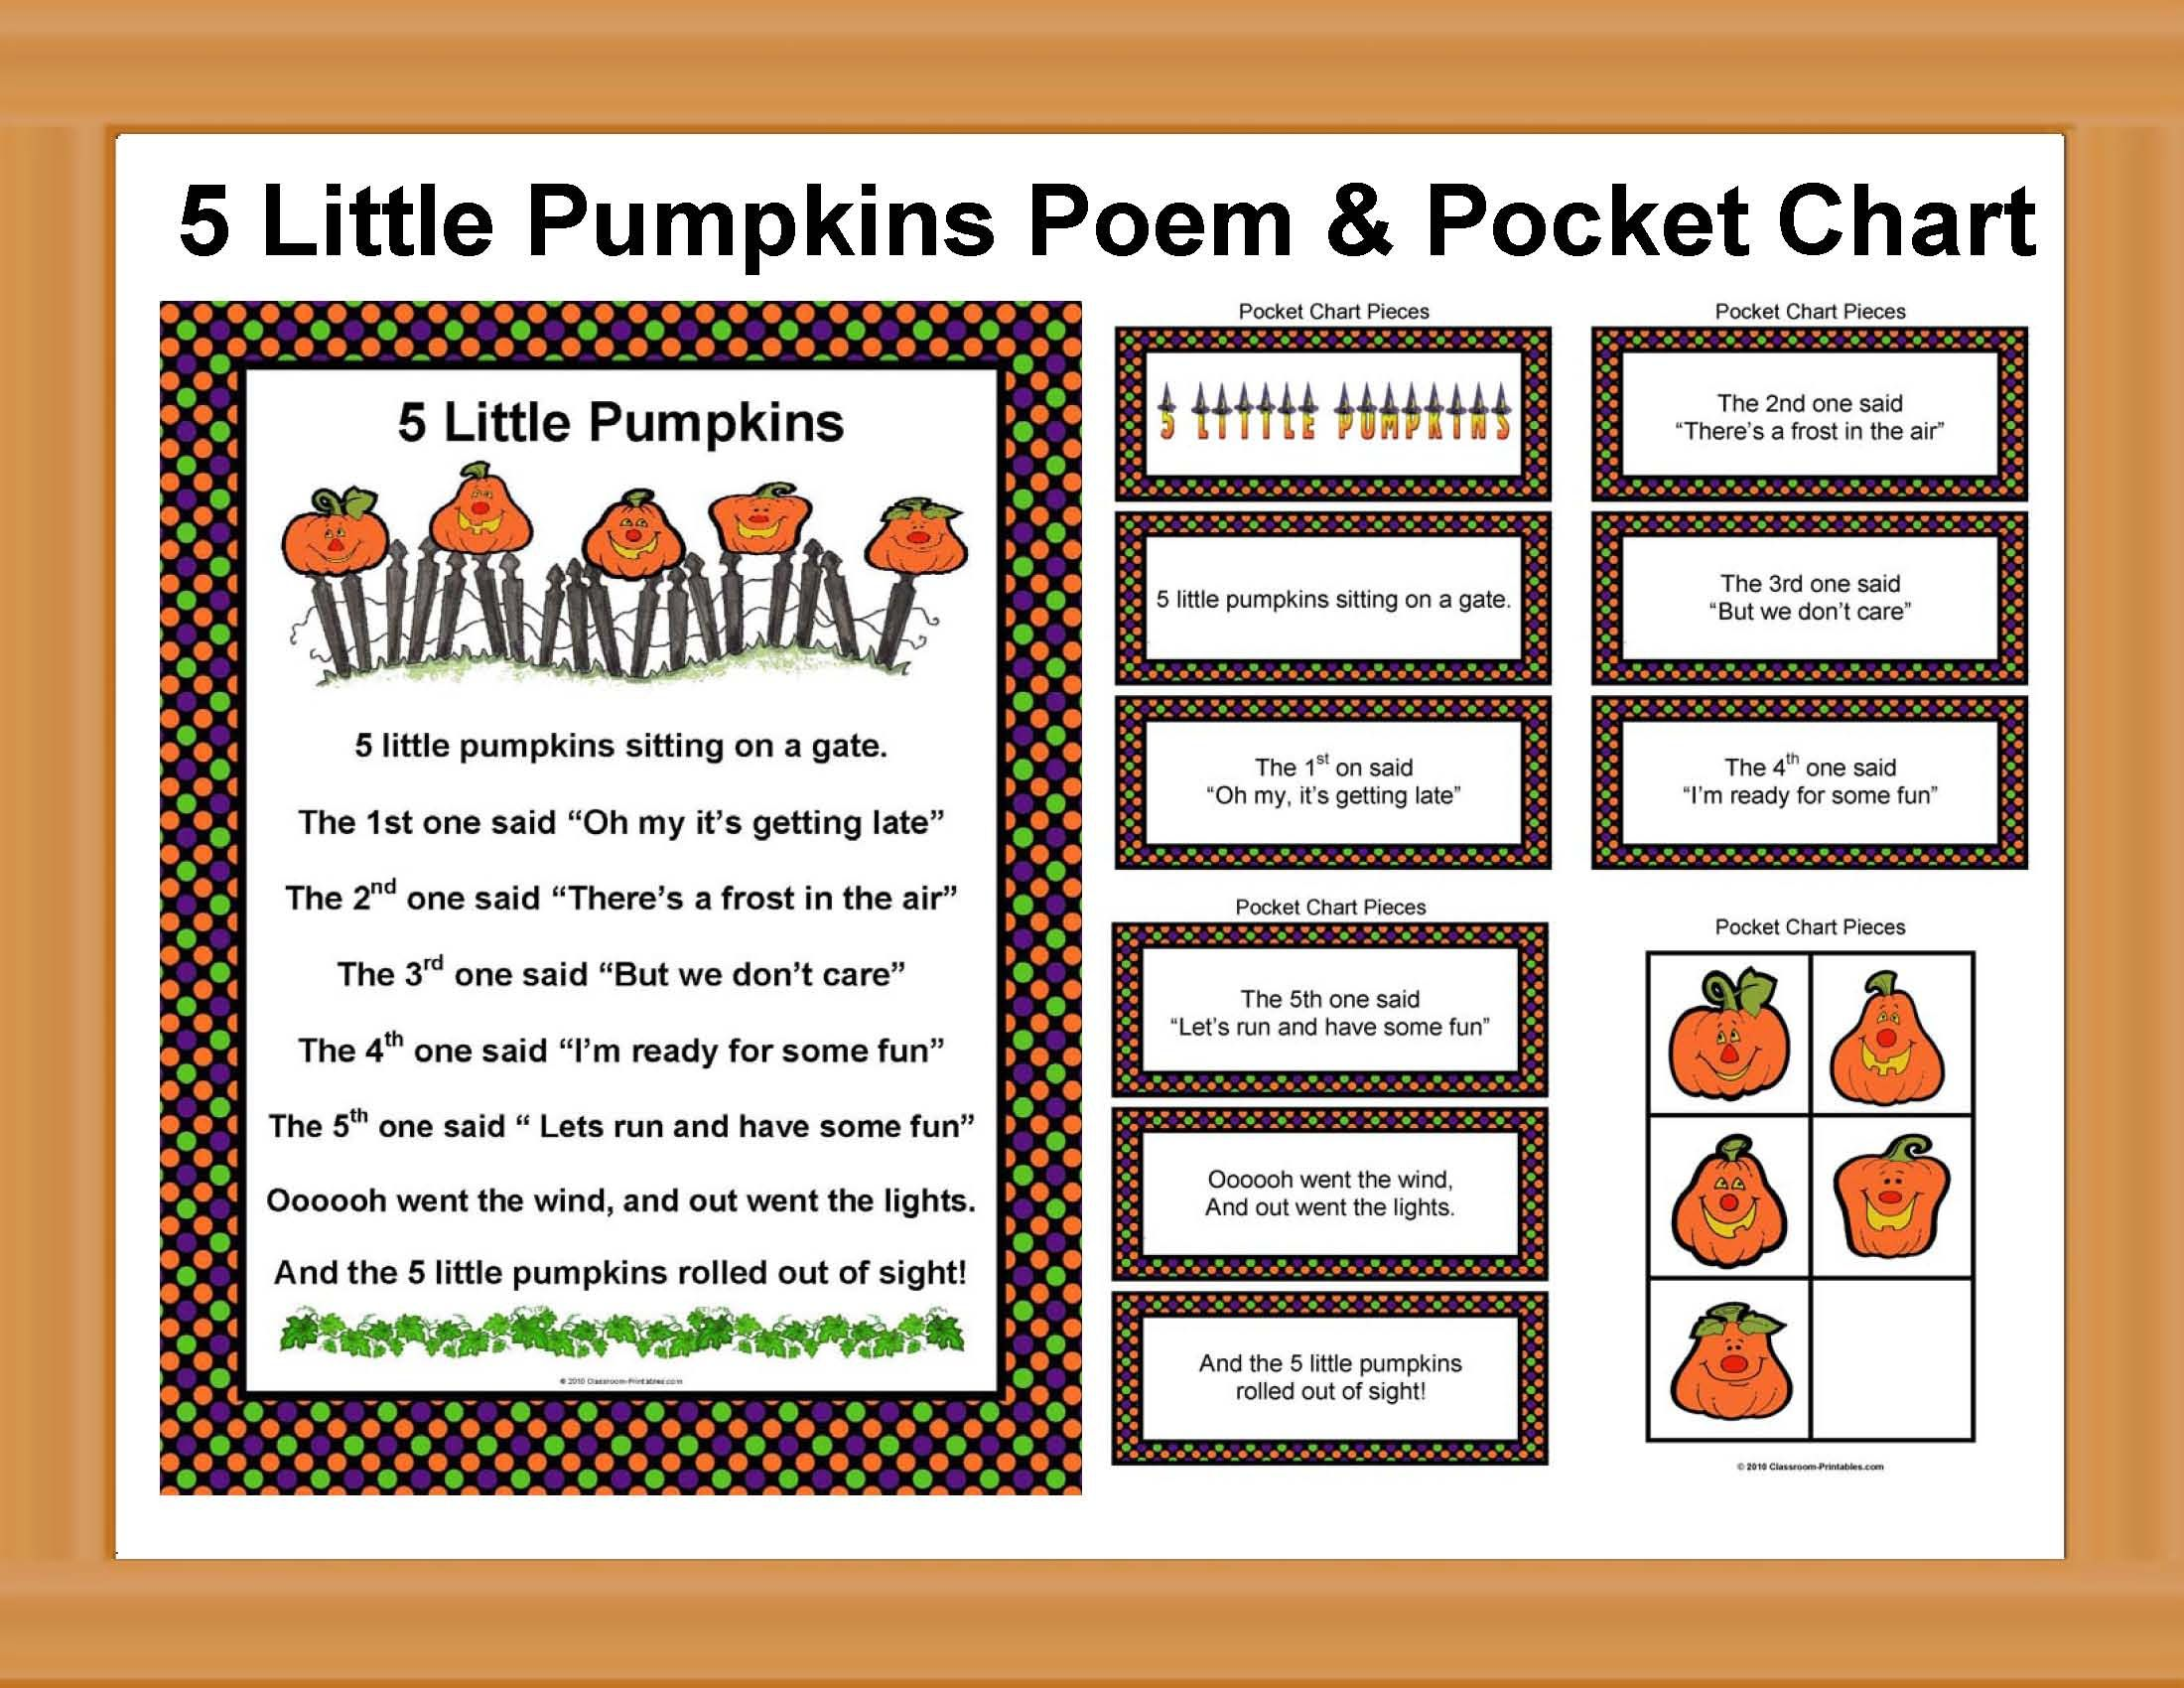 5 Little Pumpkins Poem With Pocket Chart Pieces